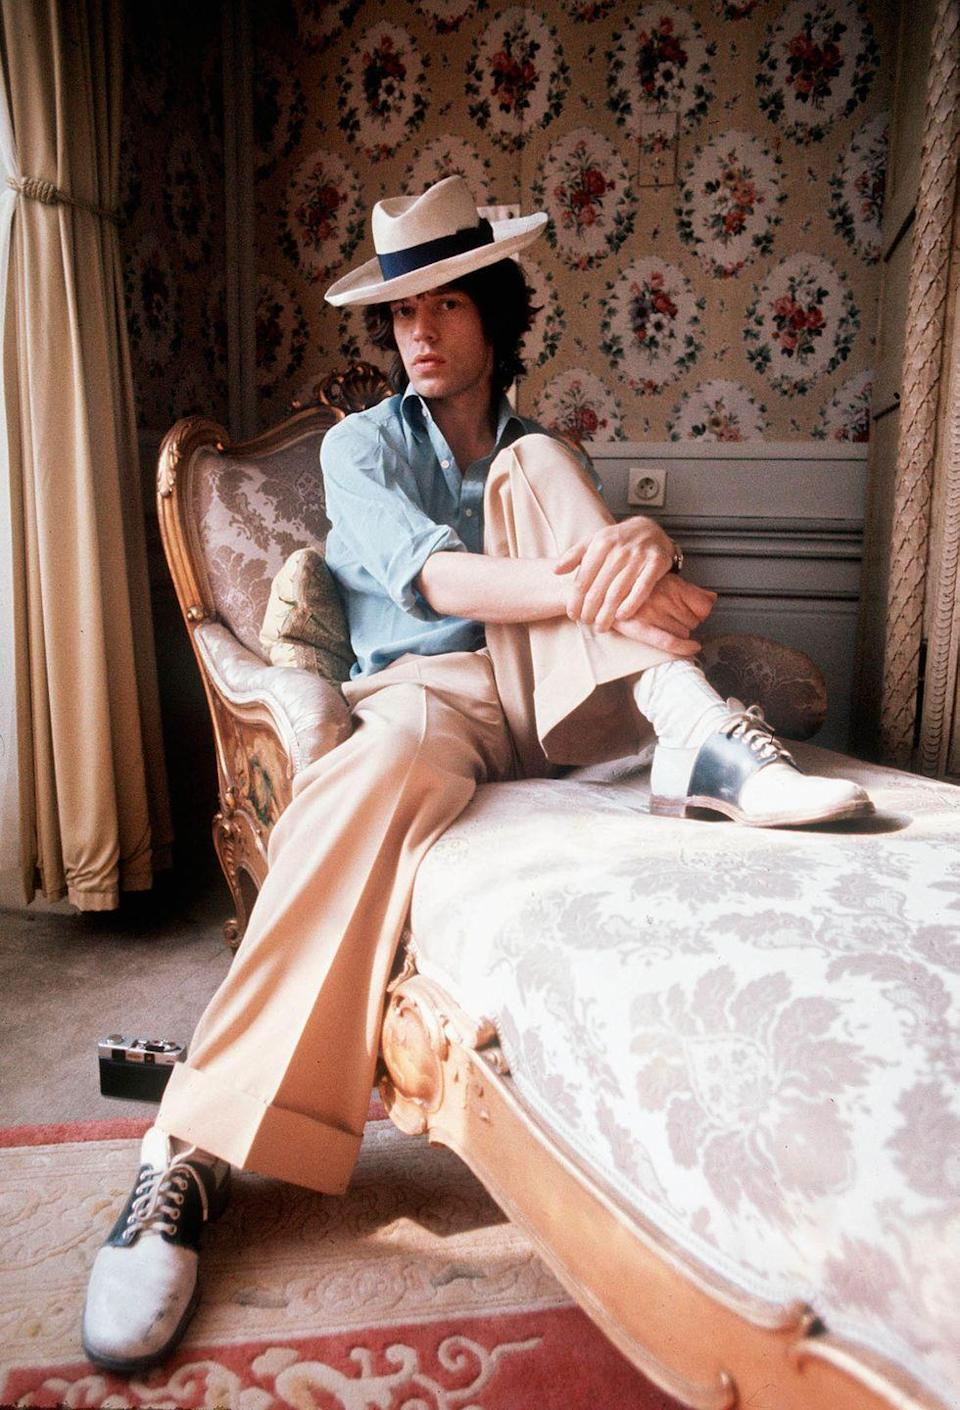 <p>Mick Jagger strikes a pose inside a chateau in September 1973 in Vienna, Austria.</p>